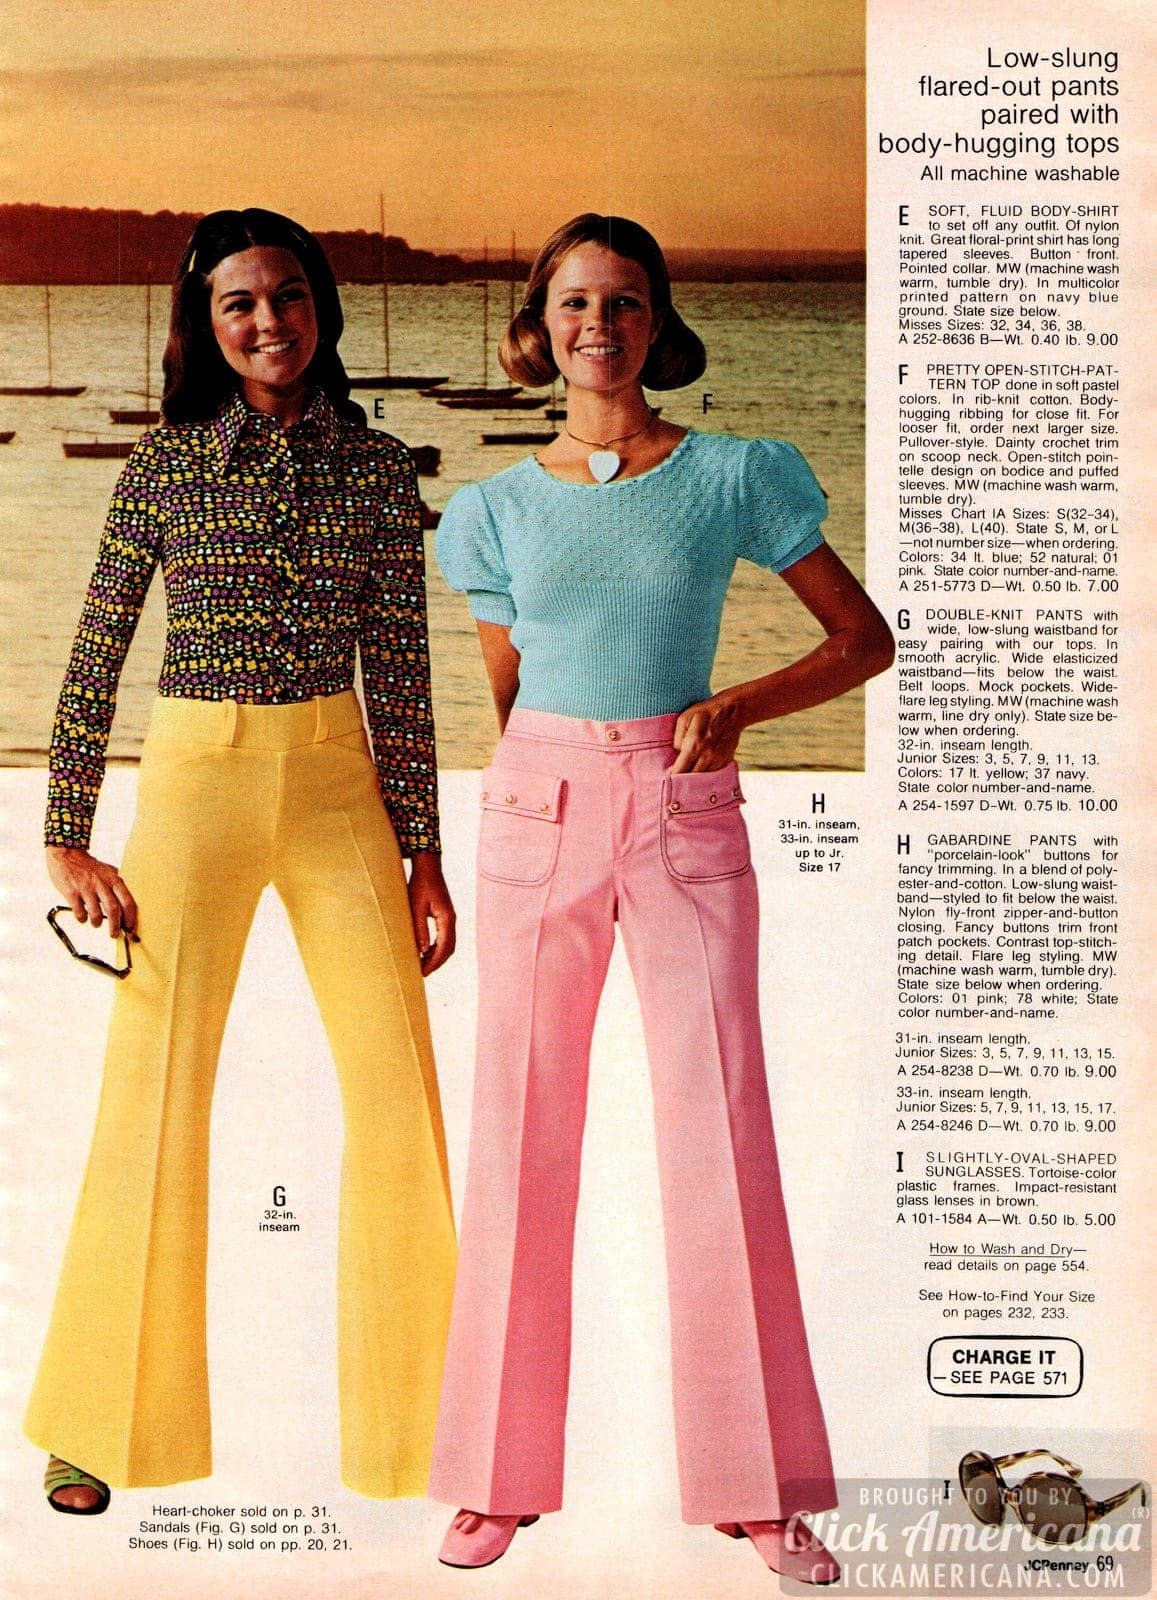 Retro low-slung flared-out double-knit and gabardine pants with body-hugging tops